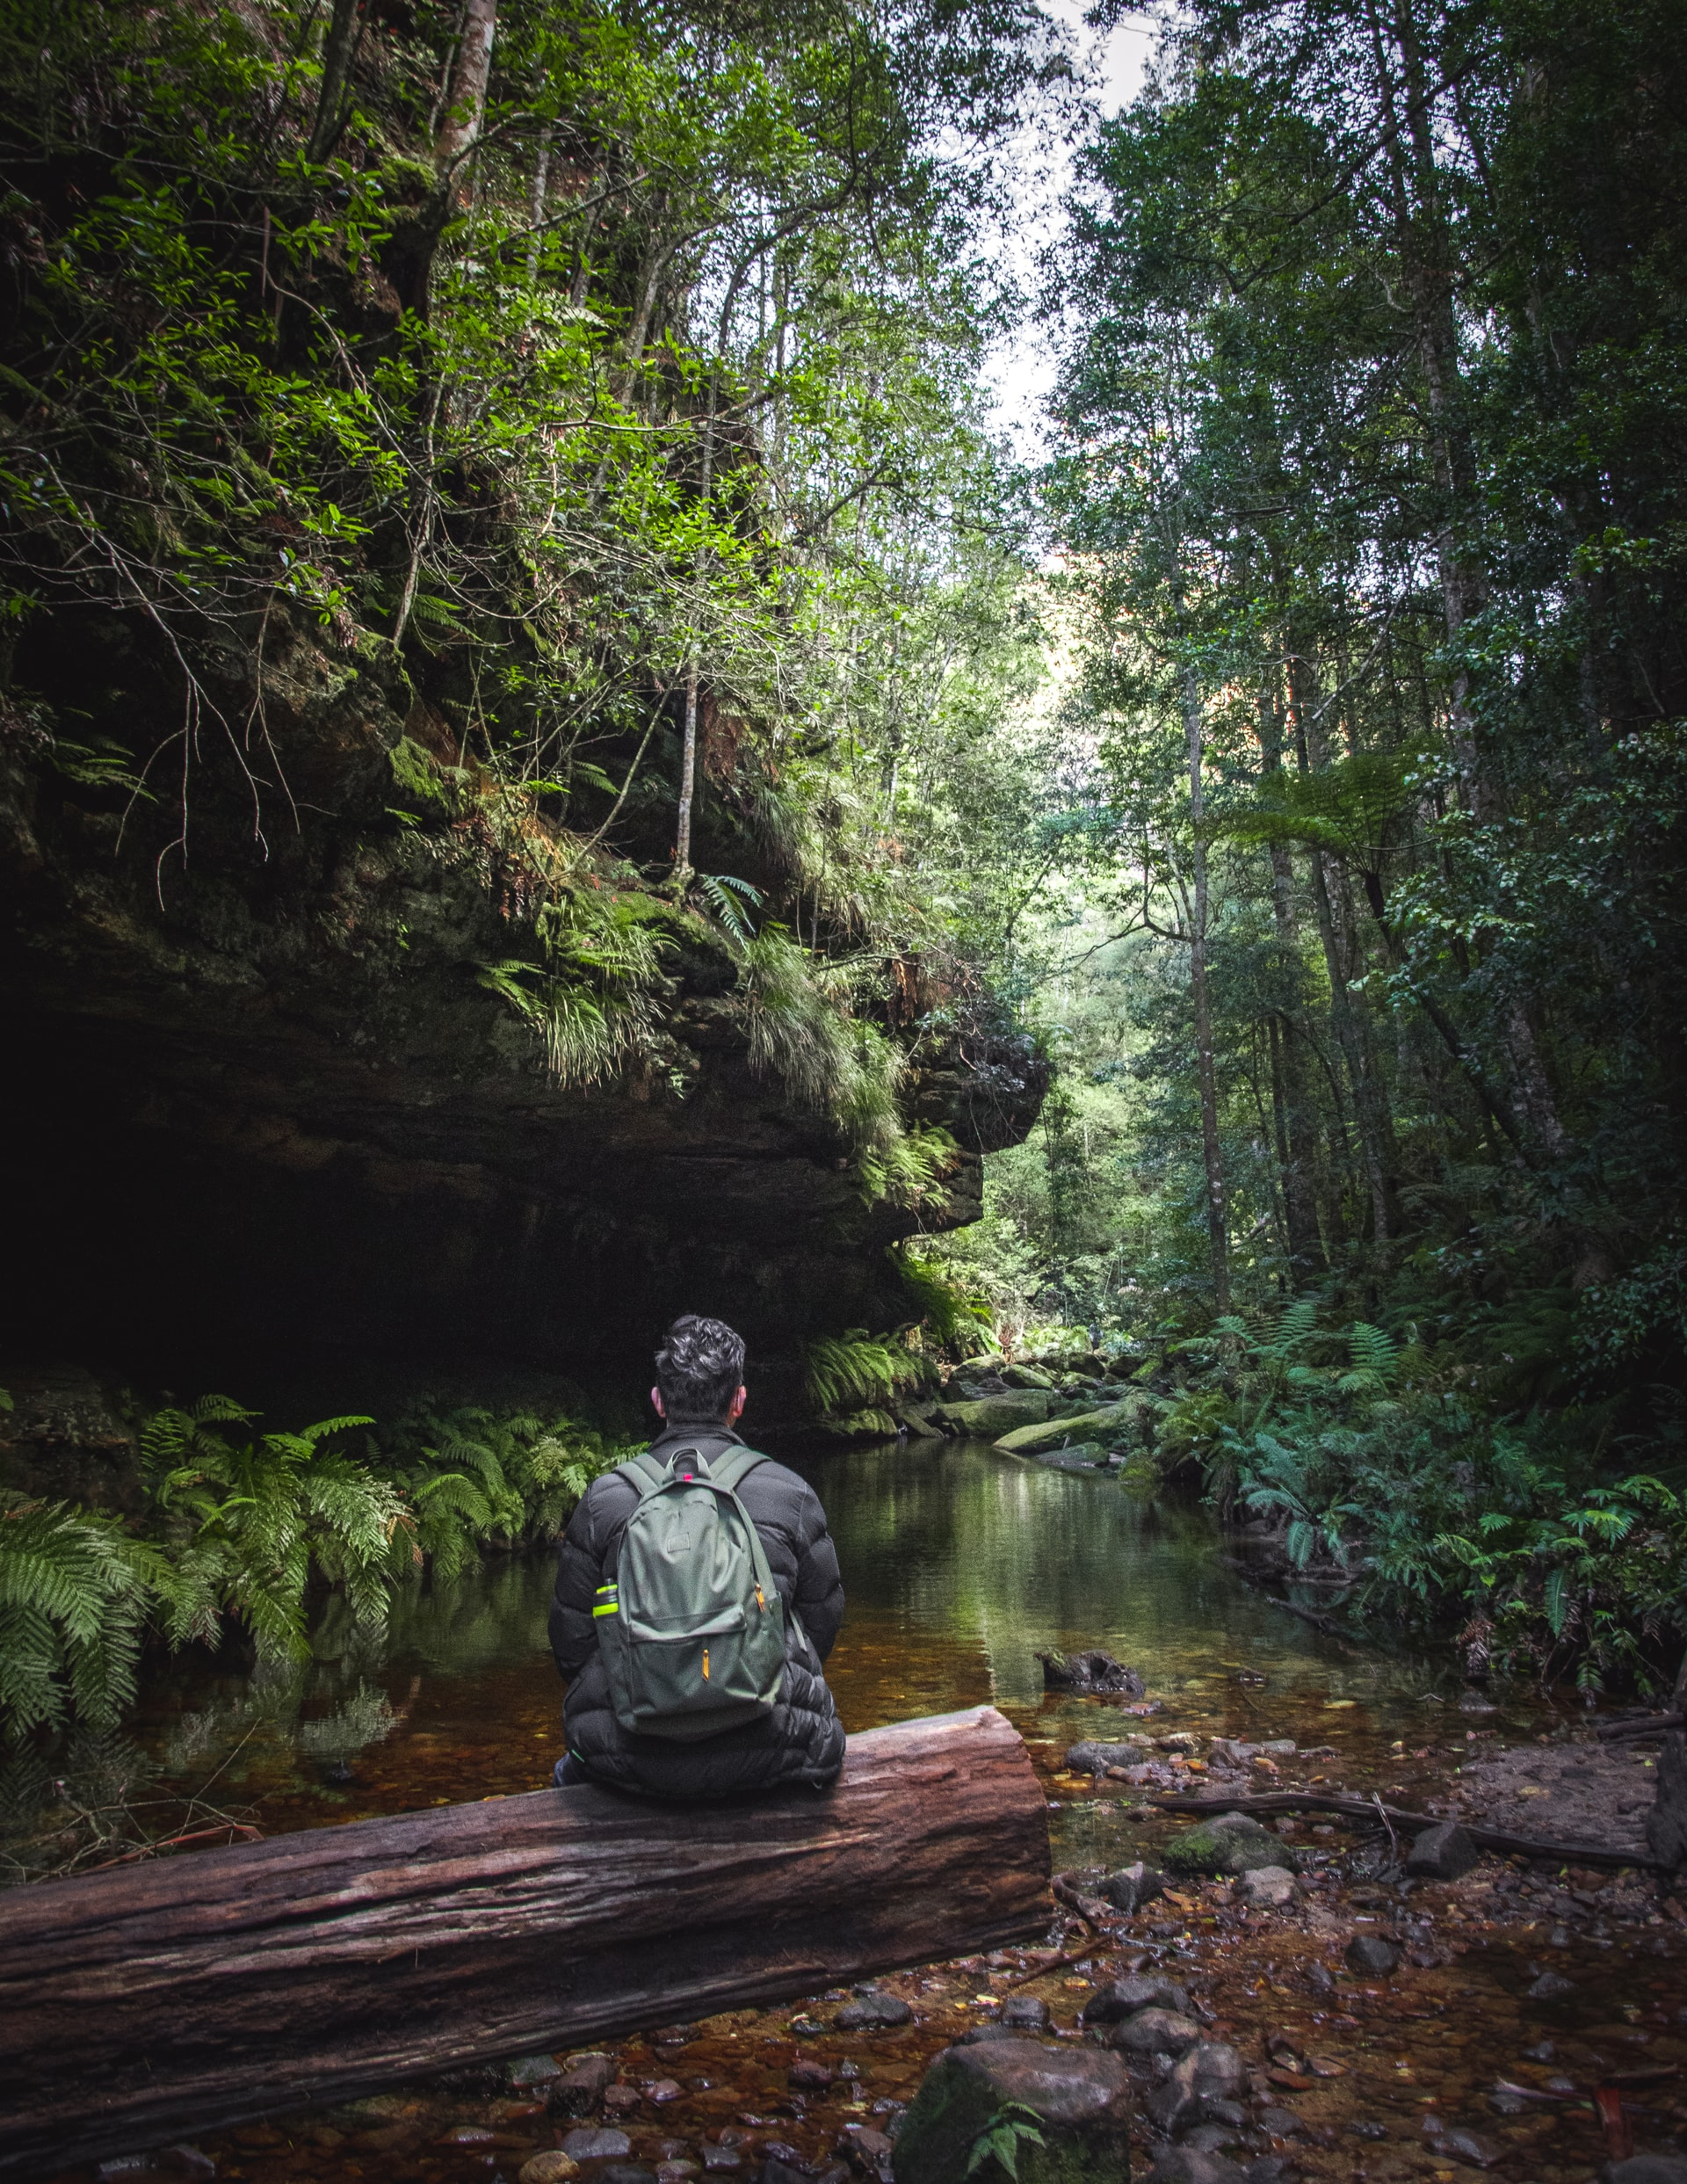 A person wearing a backpack sits on a log over a lushly forested river, looking up the river